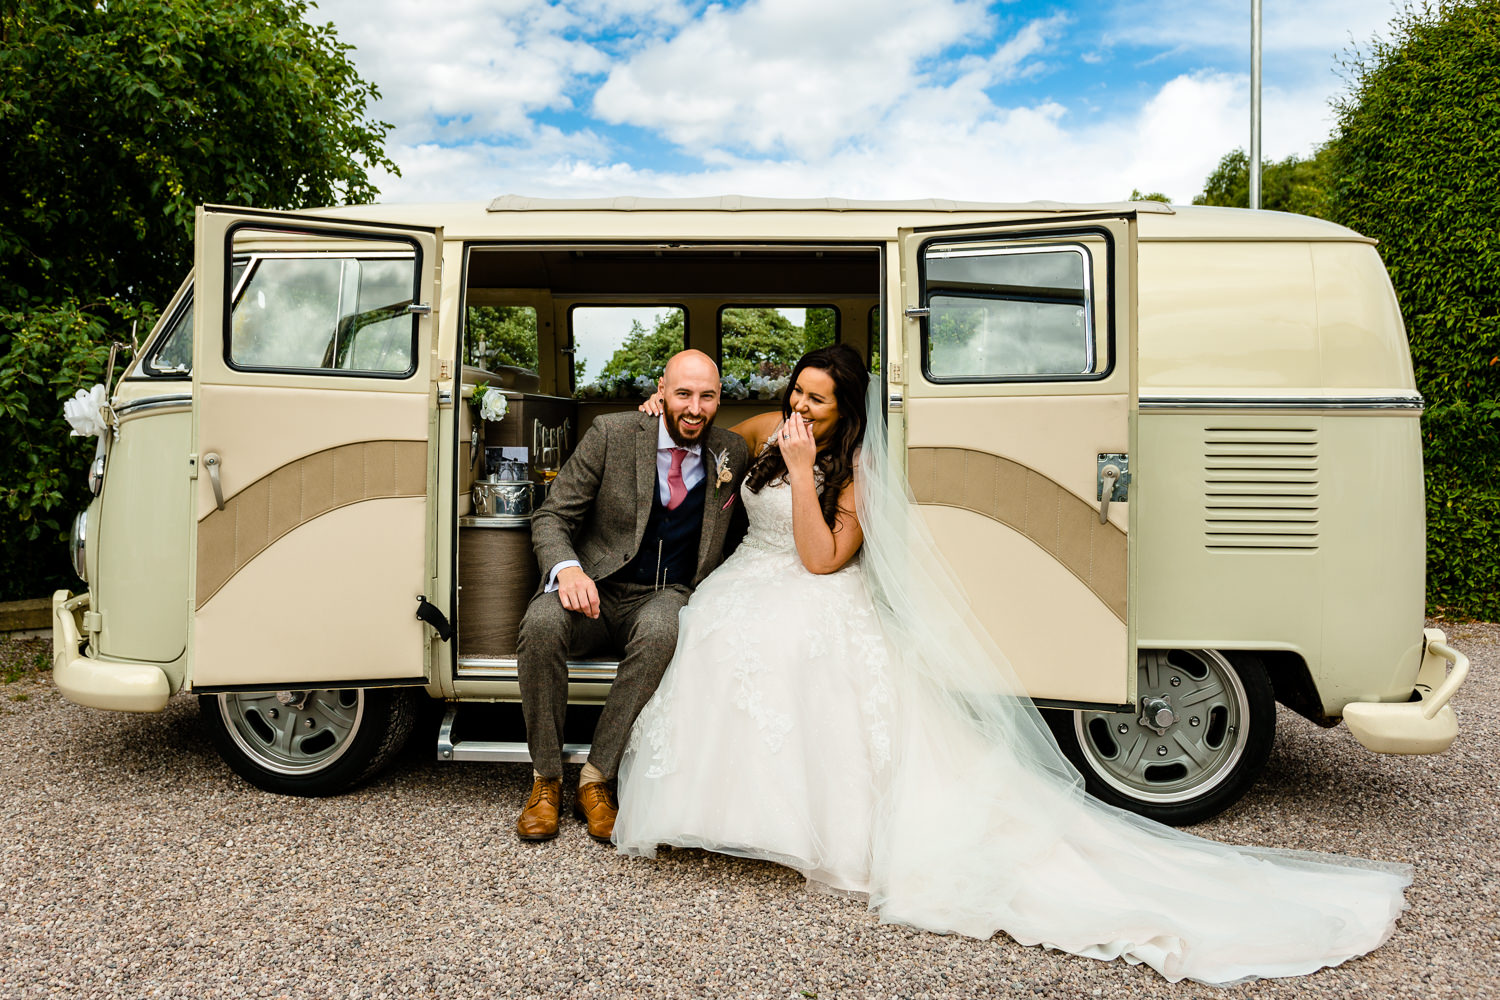 wedding photography Rochdale, a bride and groom lughing together in their vintage VW campervan